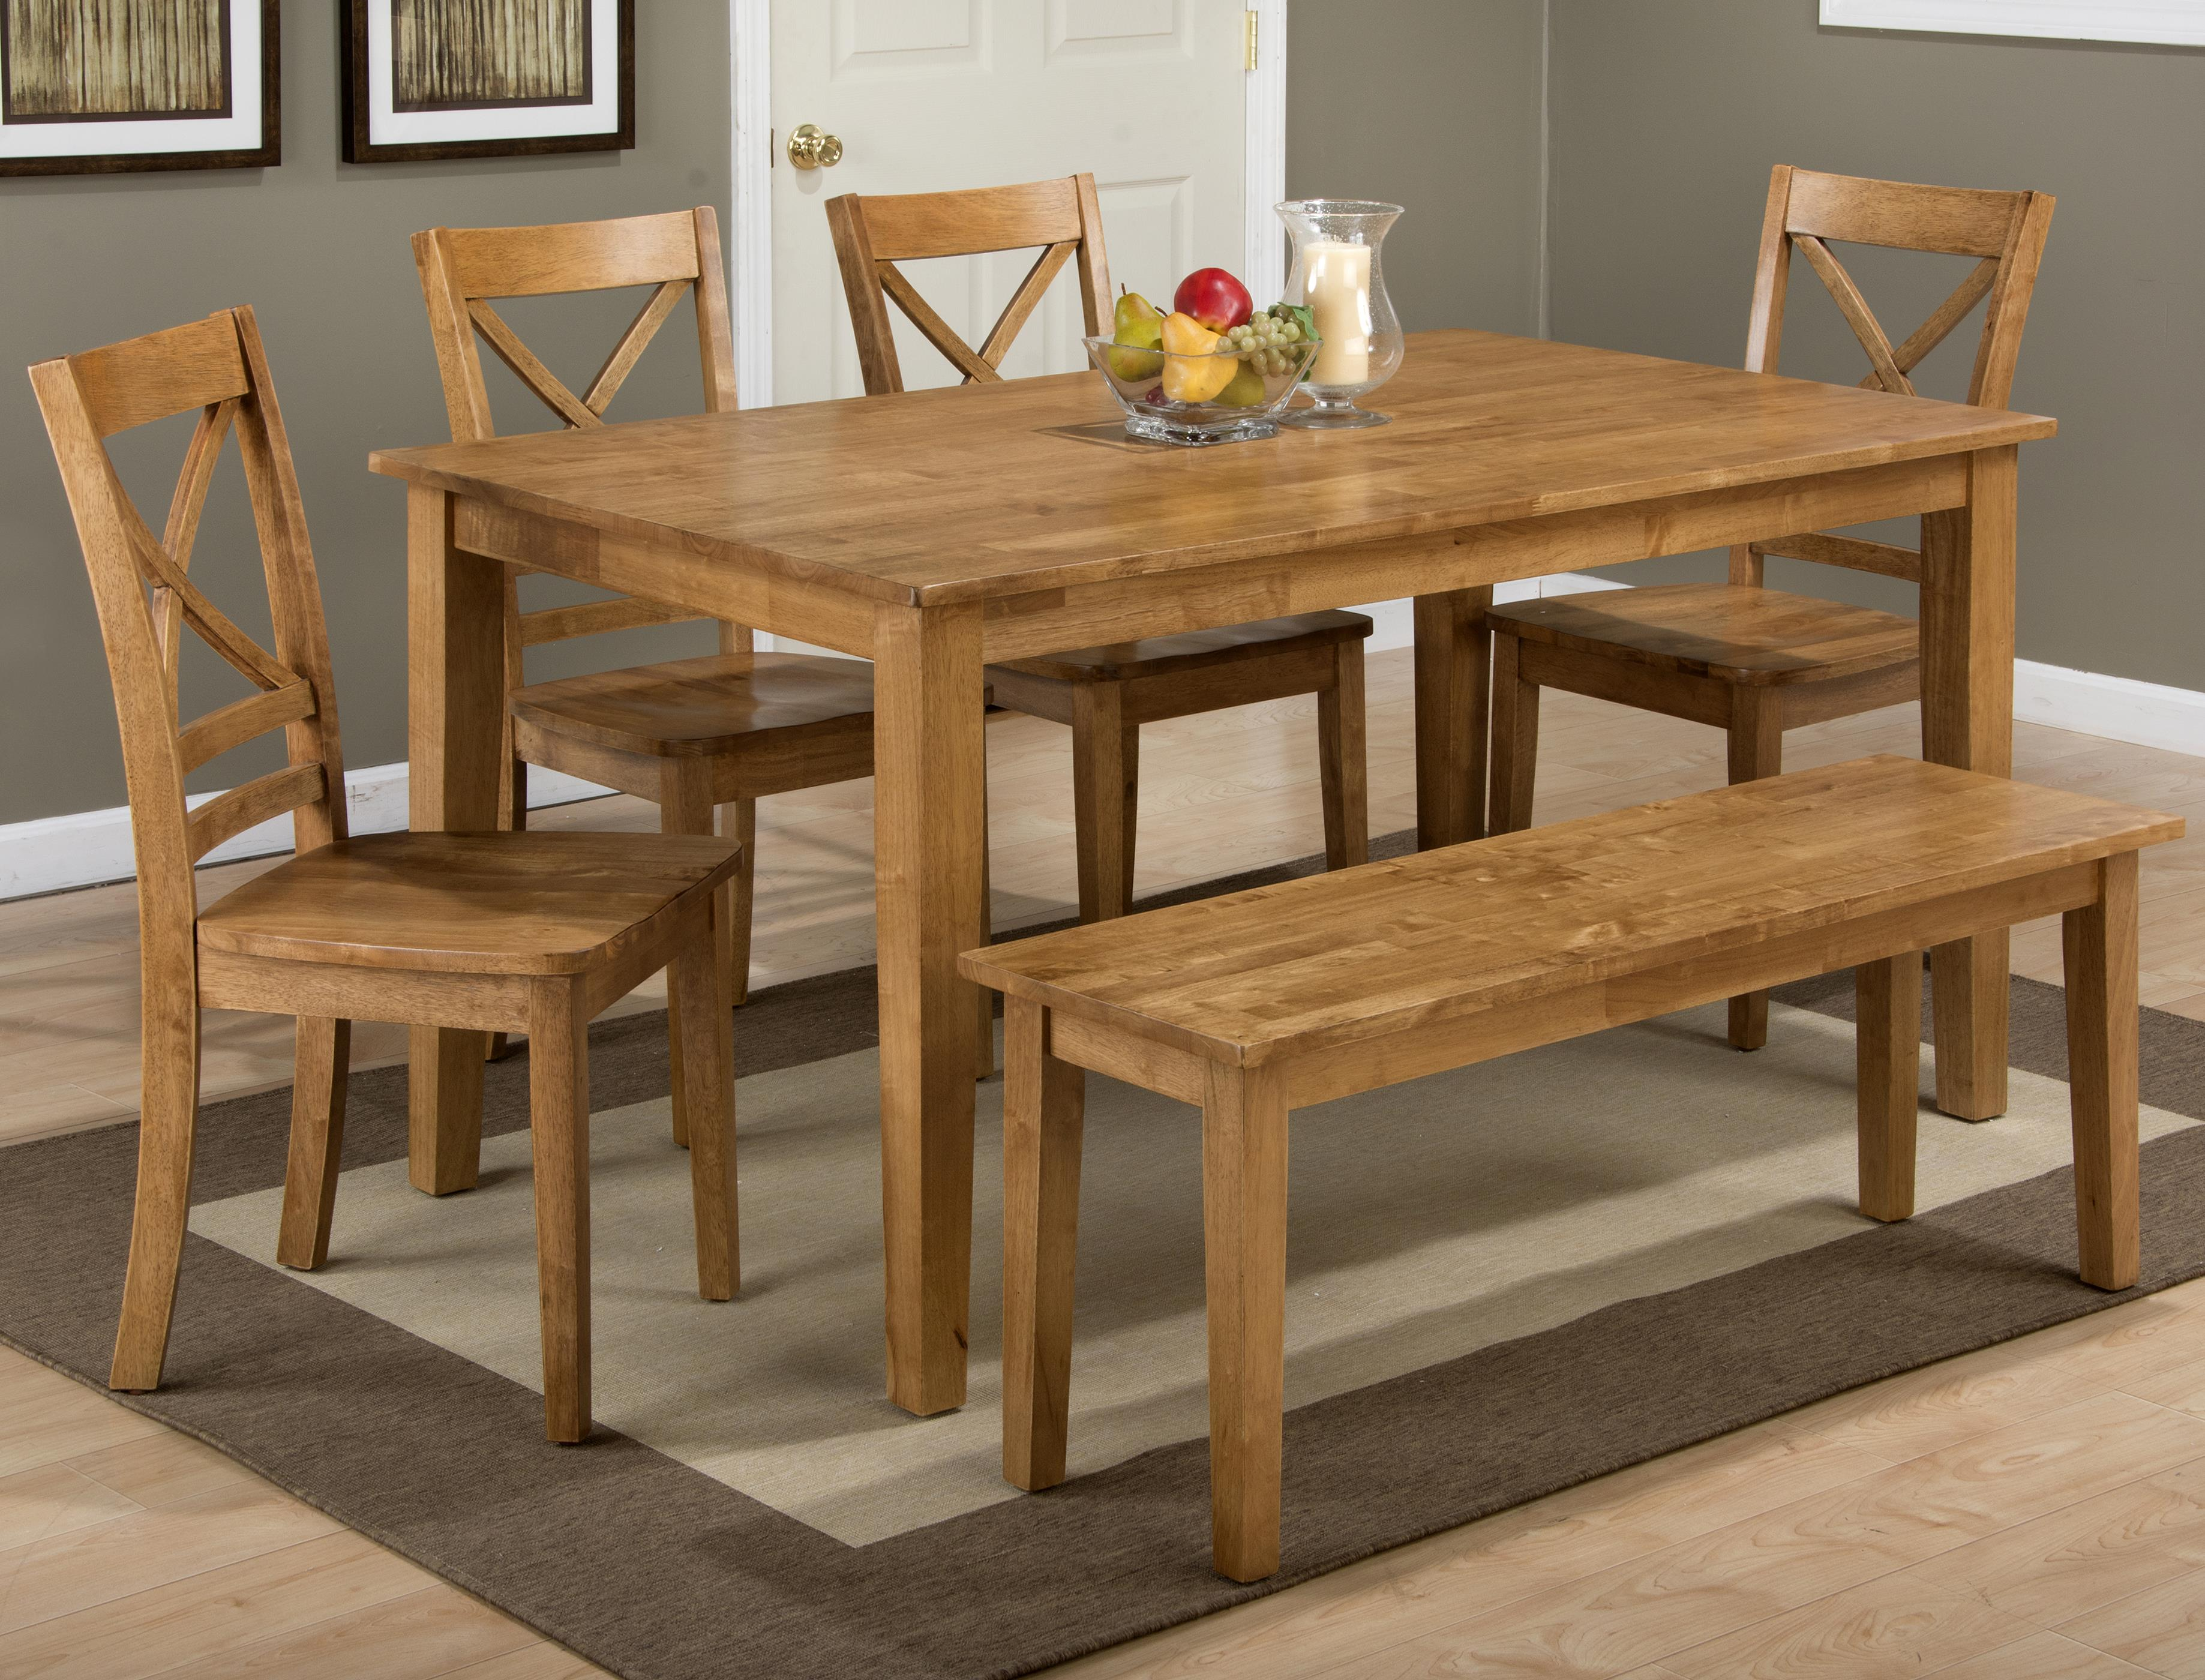 Simplicity Rectangle Dining Table Set with Bench by Jofran at Simply Home by Lindy's